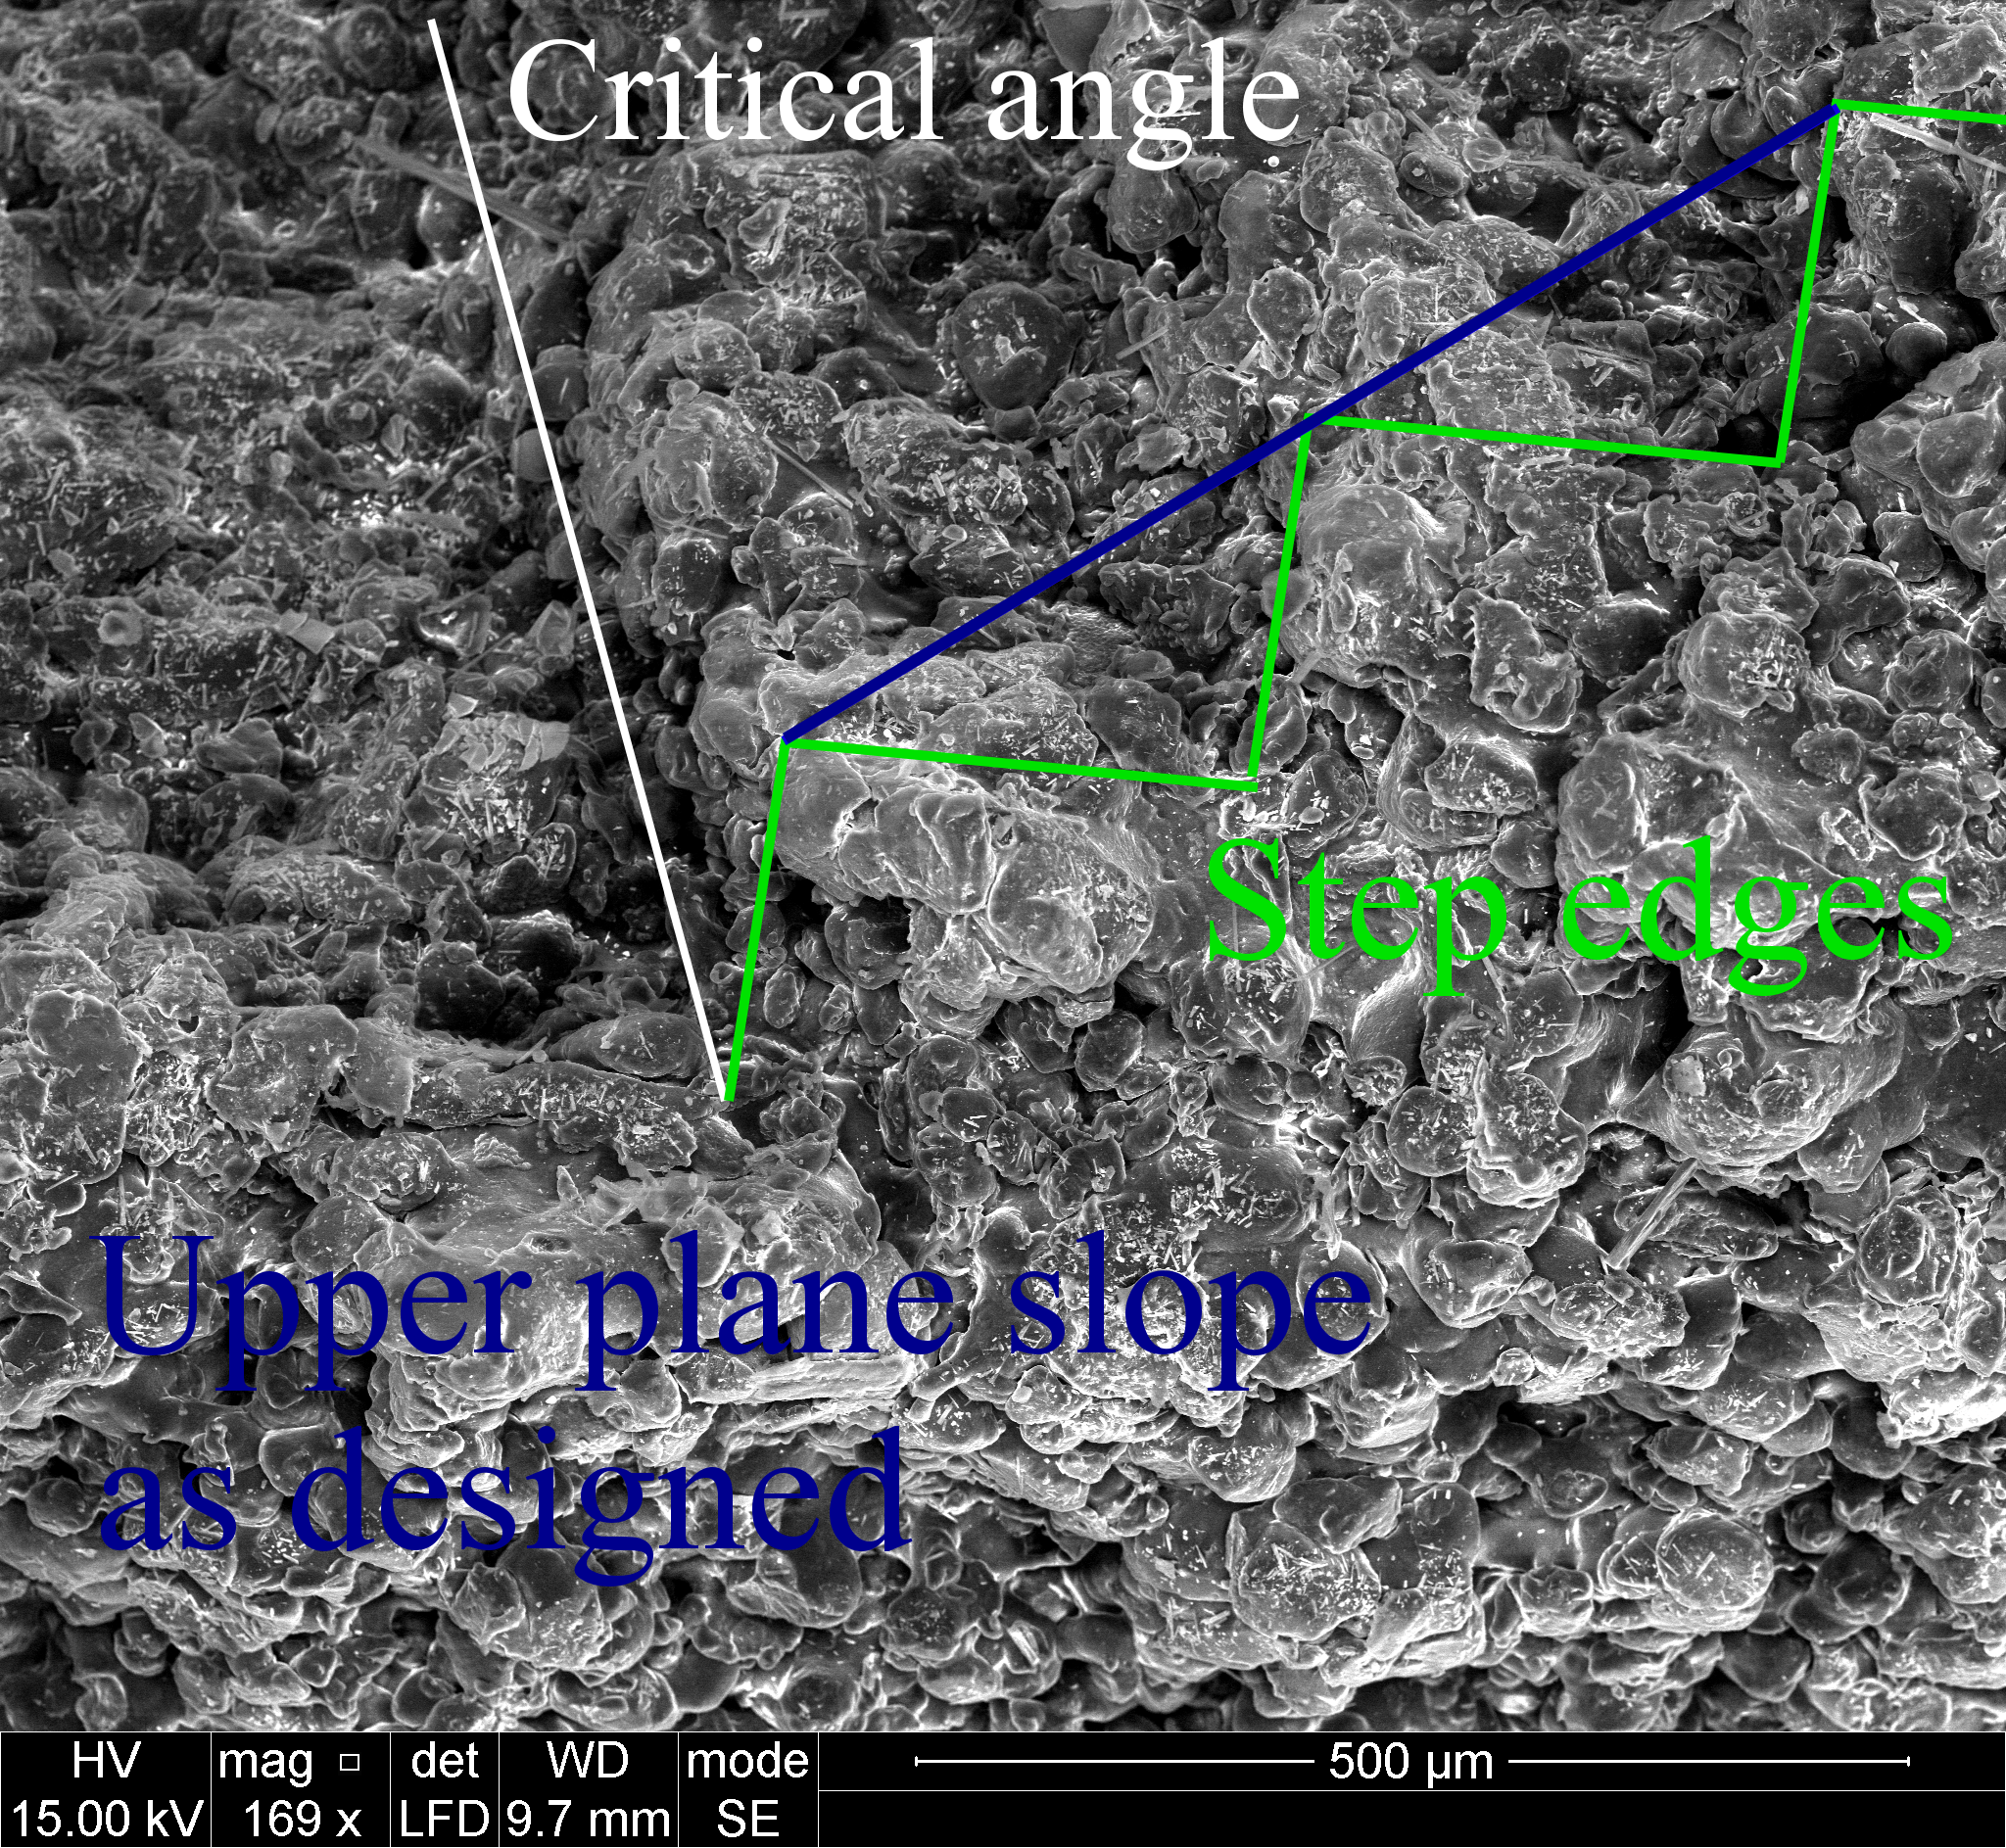 Figure 5:Angled test piece manufactured using selective laser sintering (SLS) showing high surface roughness incompatible with cell adhesion assays.